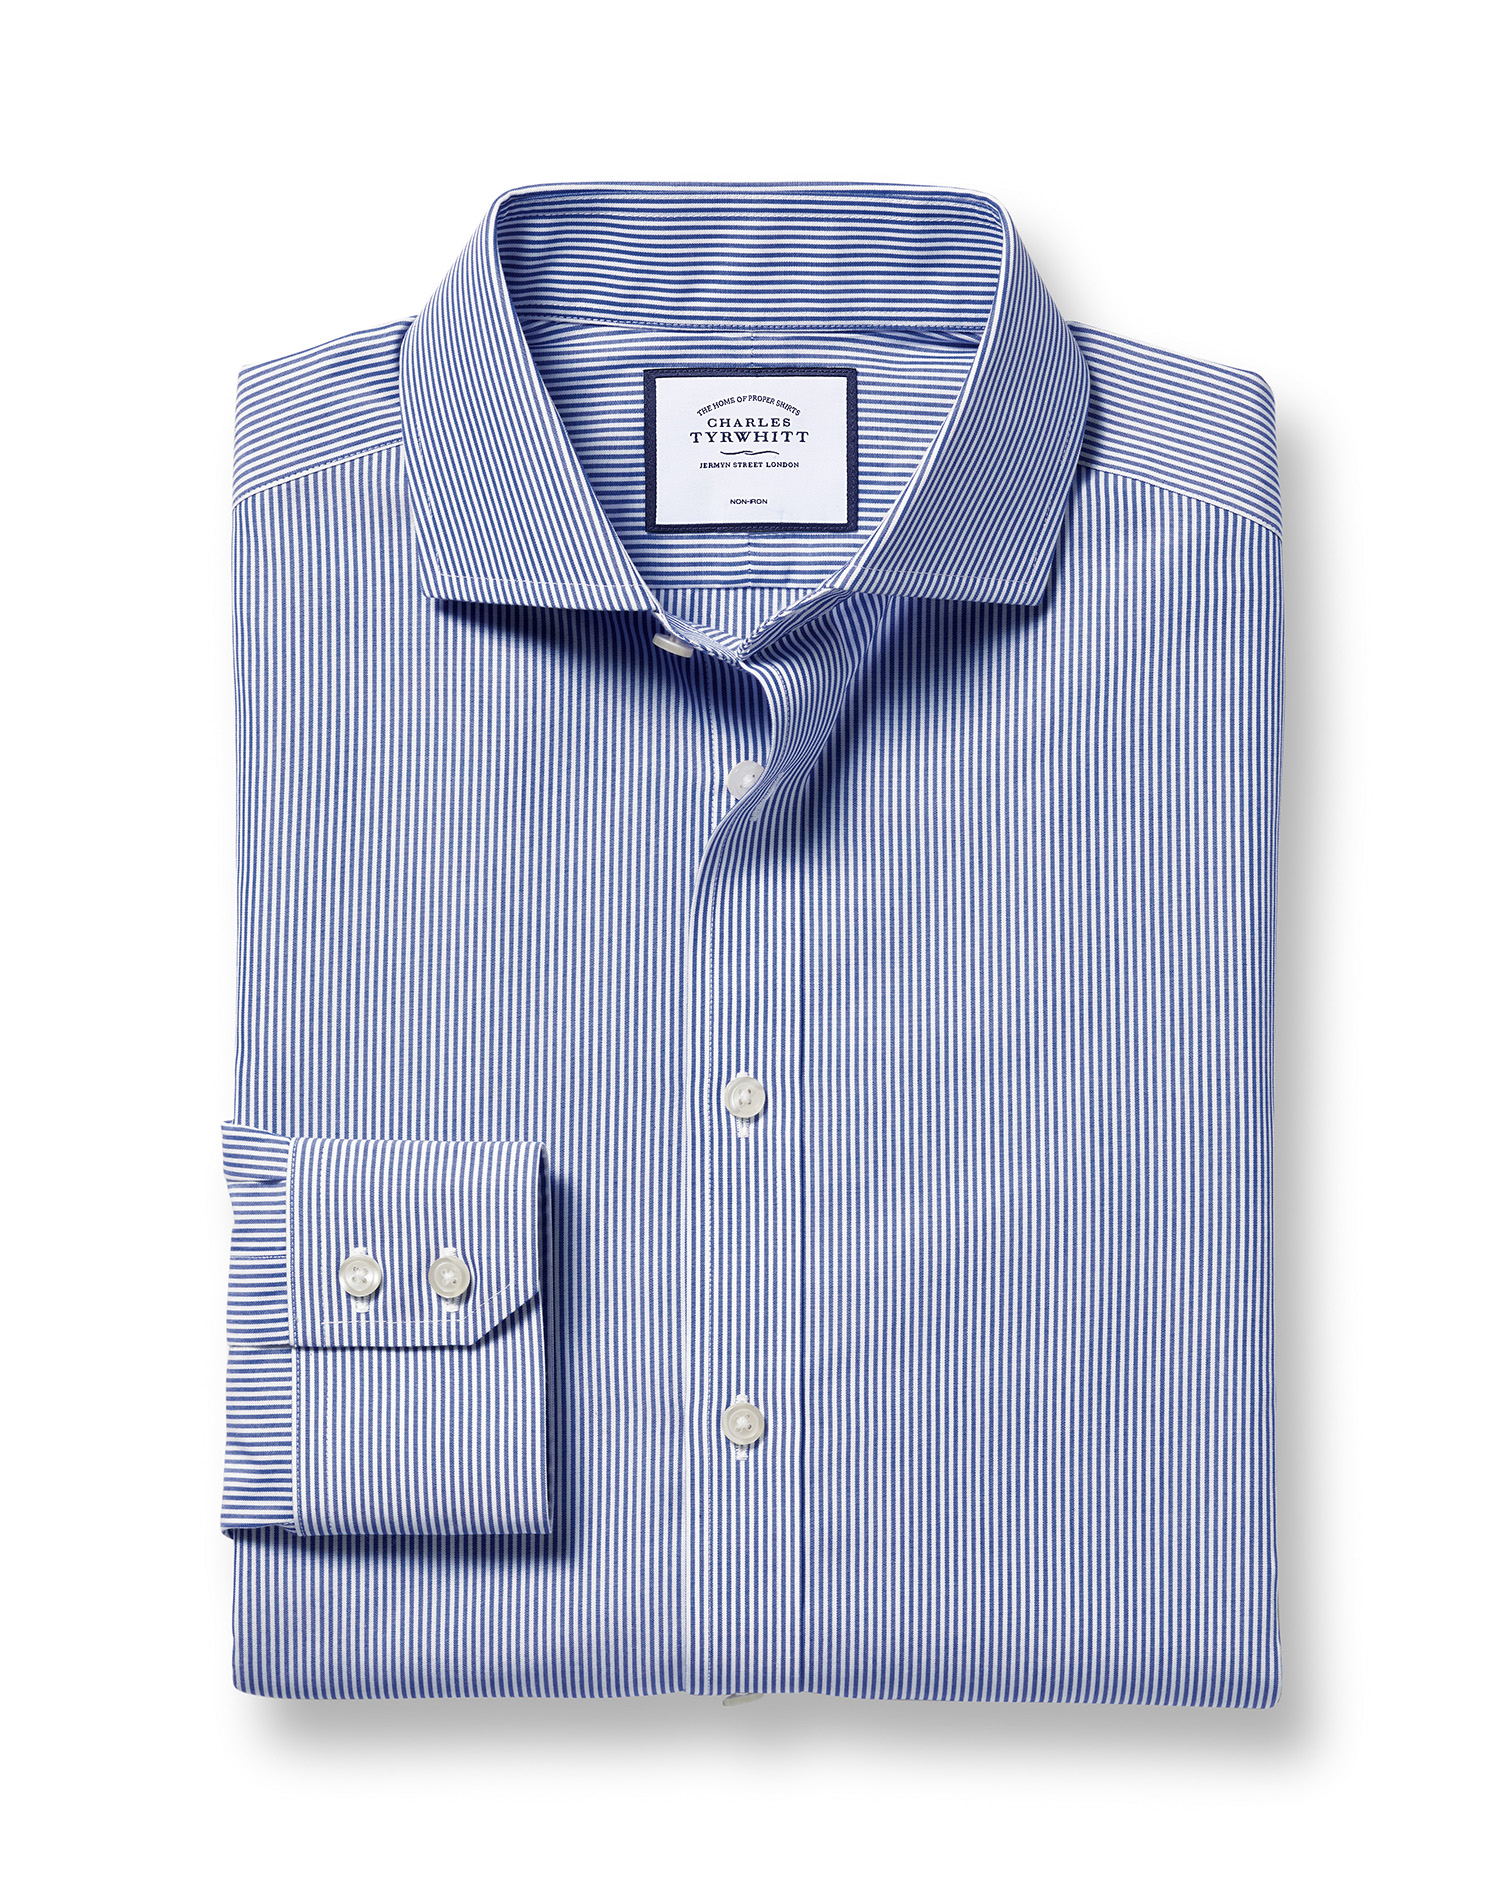 Slim Fit Cutaway Non-Iron Bengal Stripe Navy Blue Cotton Formal Shirt Single Cuff Size 16.5/38 by Ch